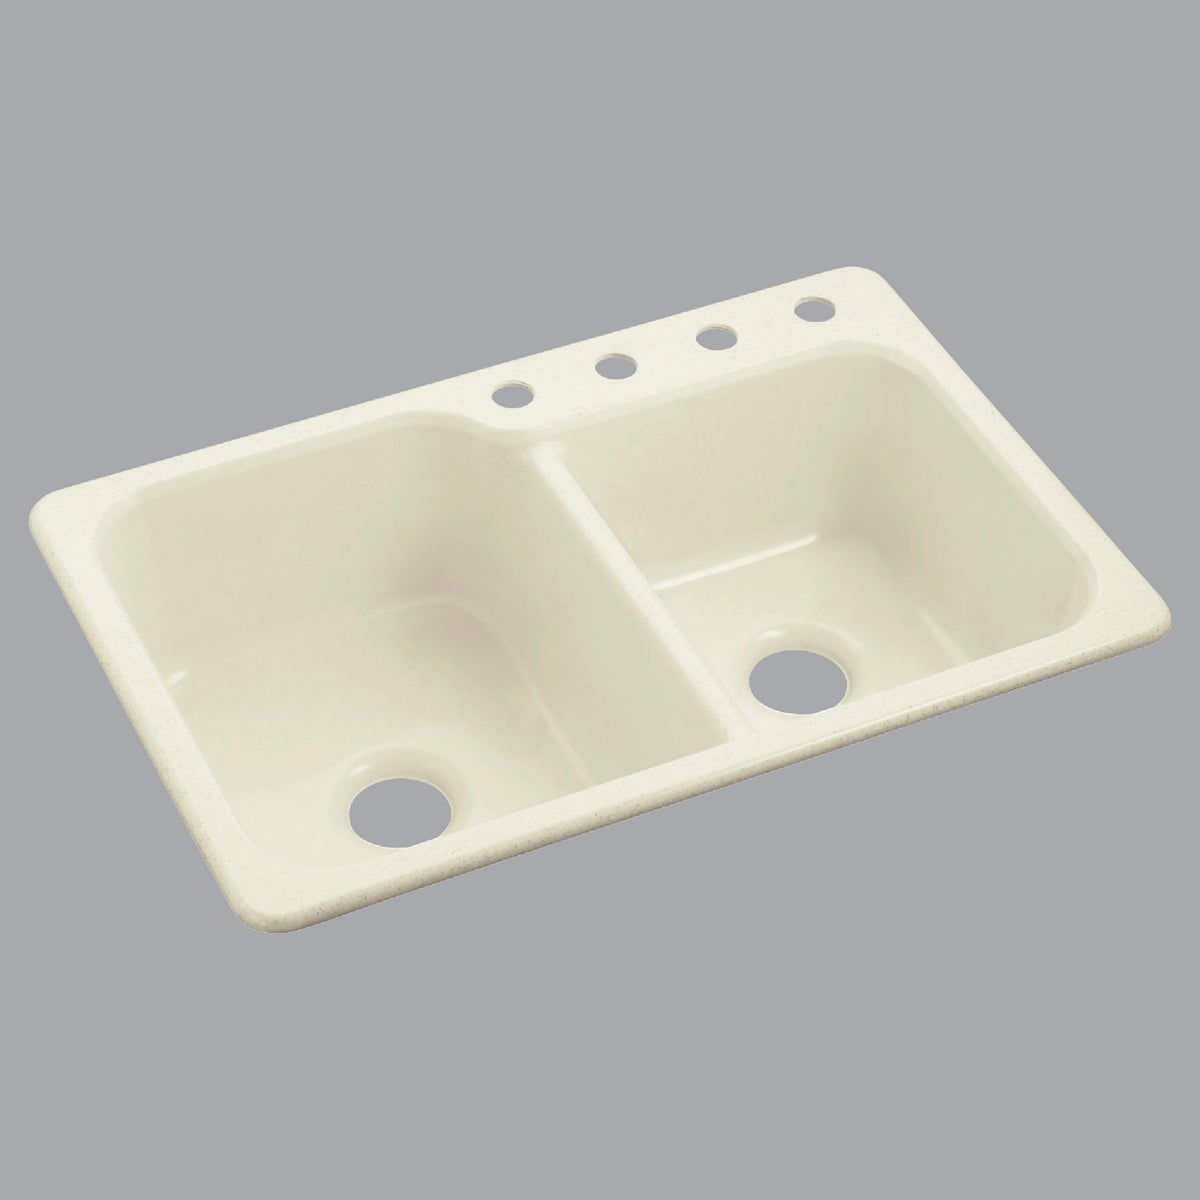 BISCUIT COMPOSITE SINK - SC3322DBG-U-96 by Sterling Pbg/vikrell